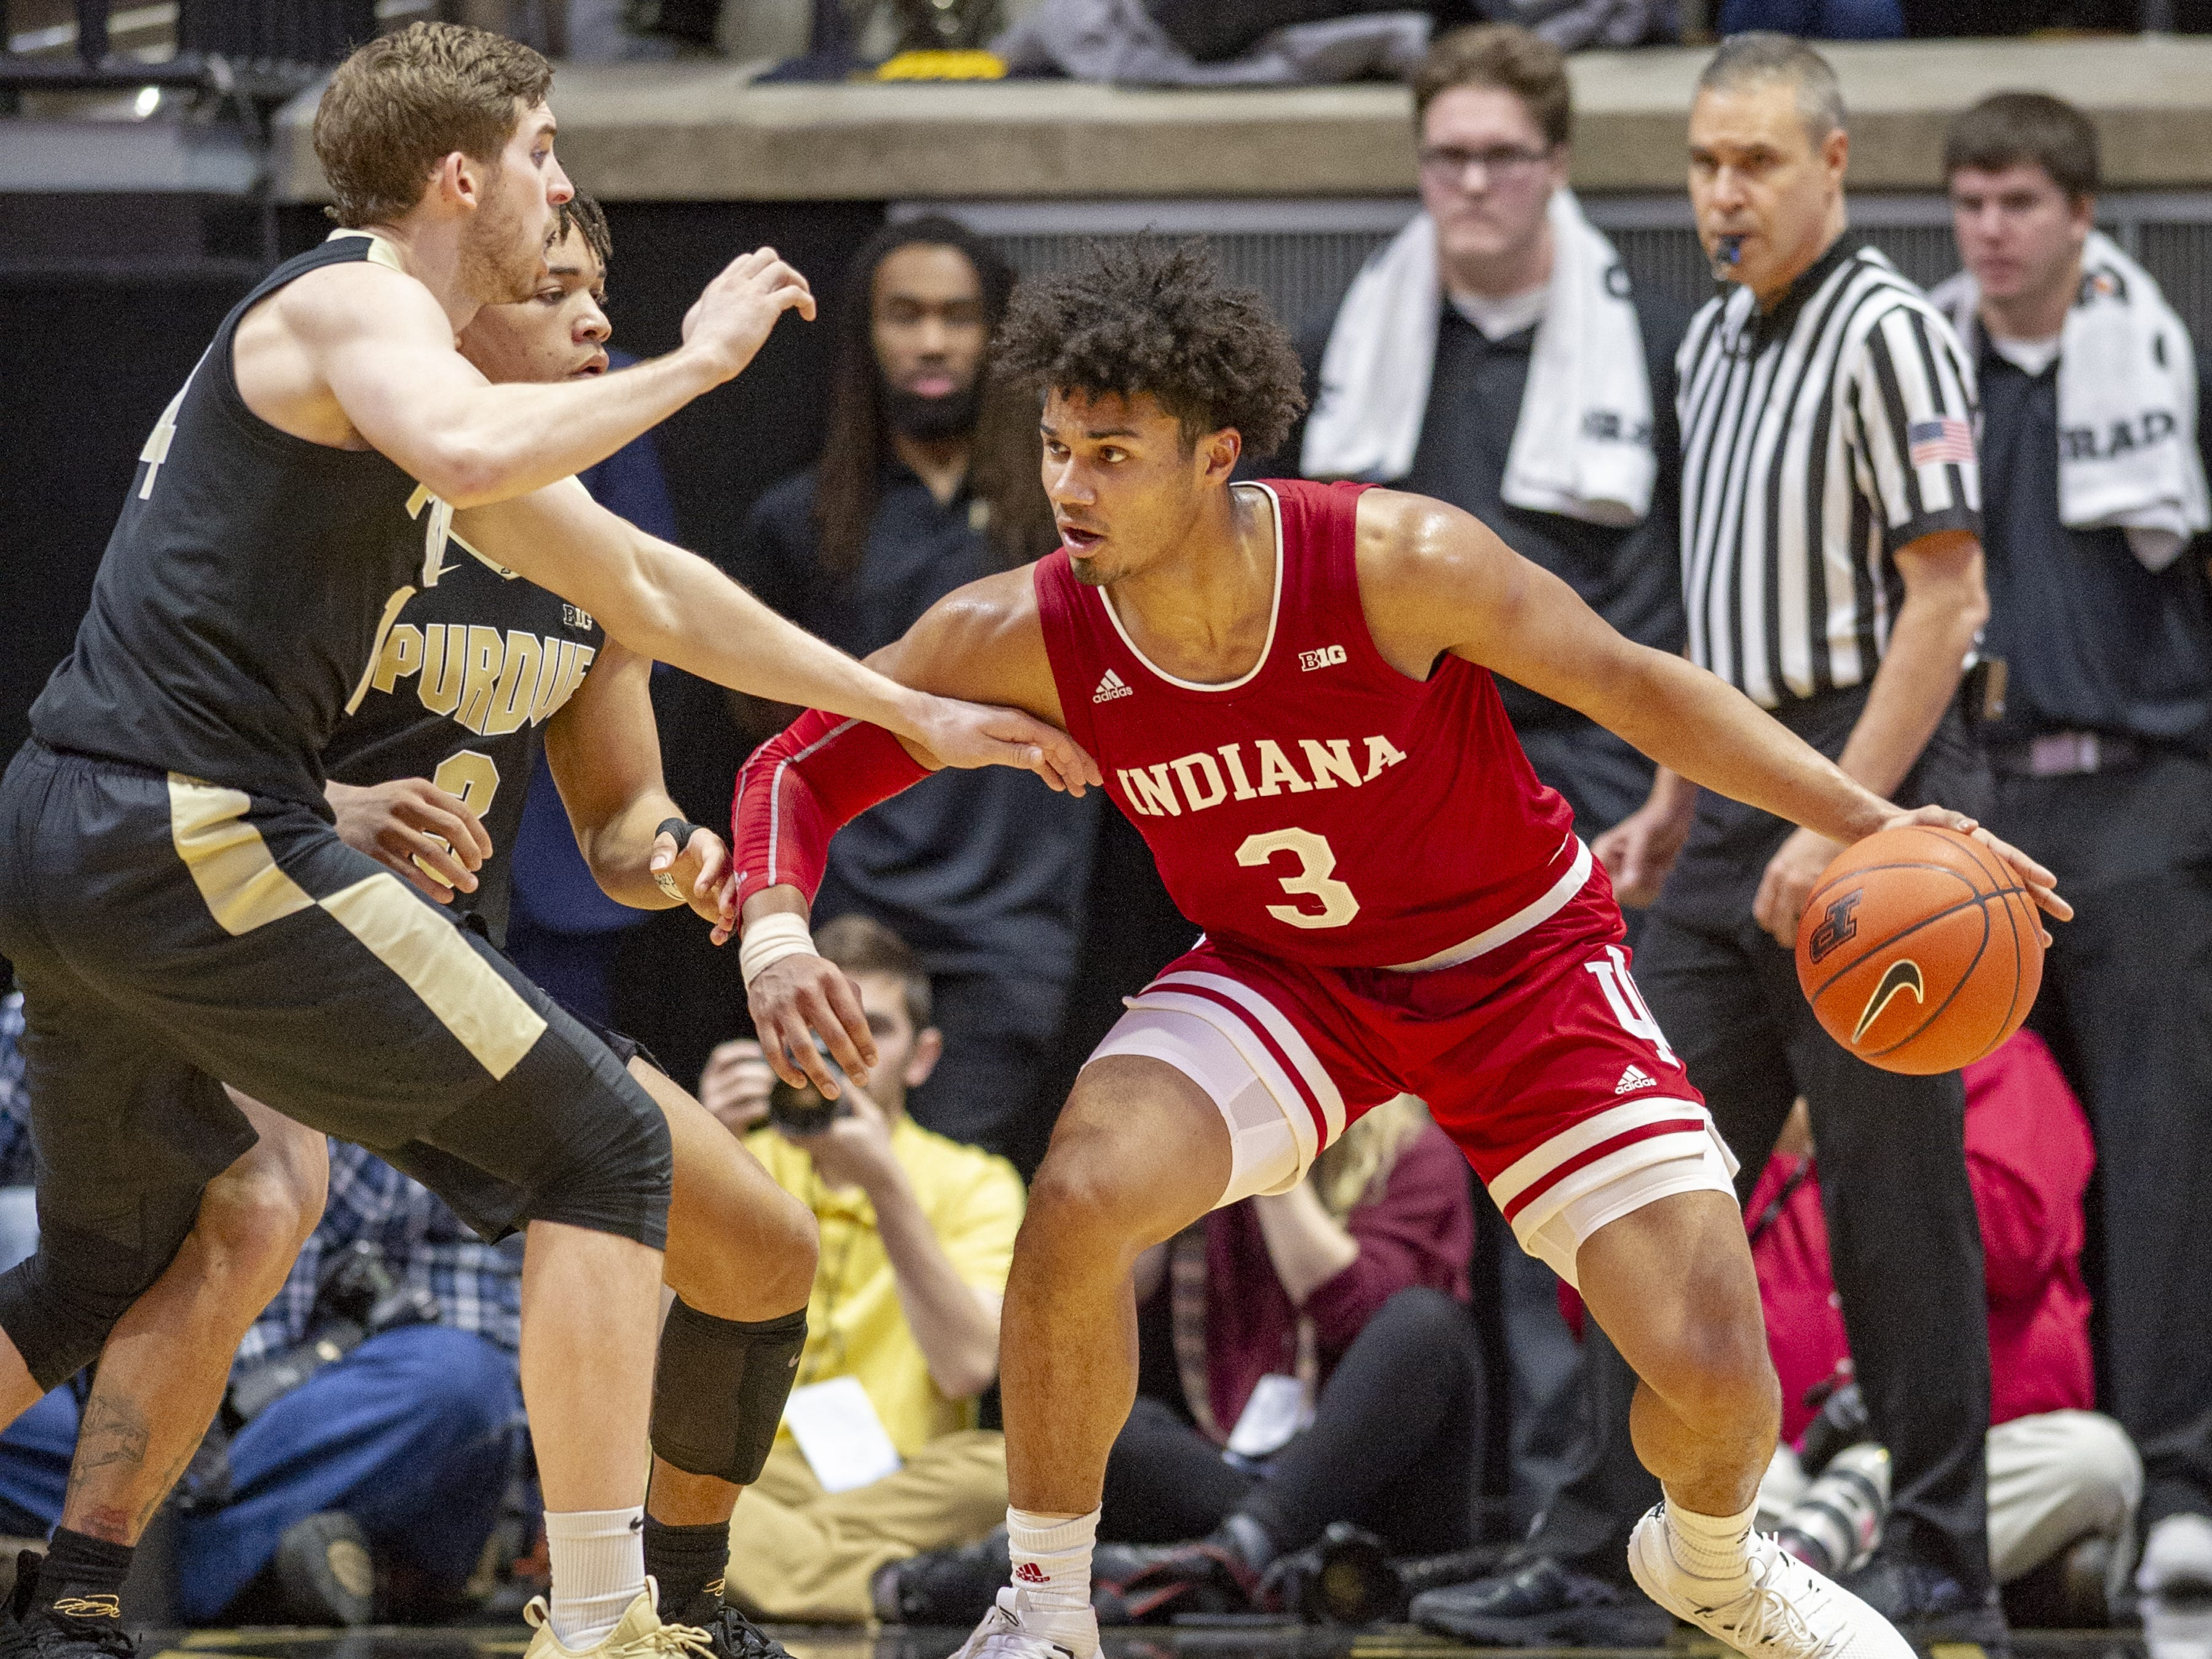 Indiana Hoosiers forward Justin Smith (3) looks for an opportunity to make a move during the second against Purdue.